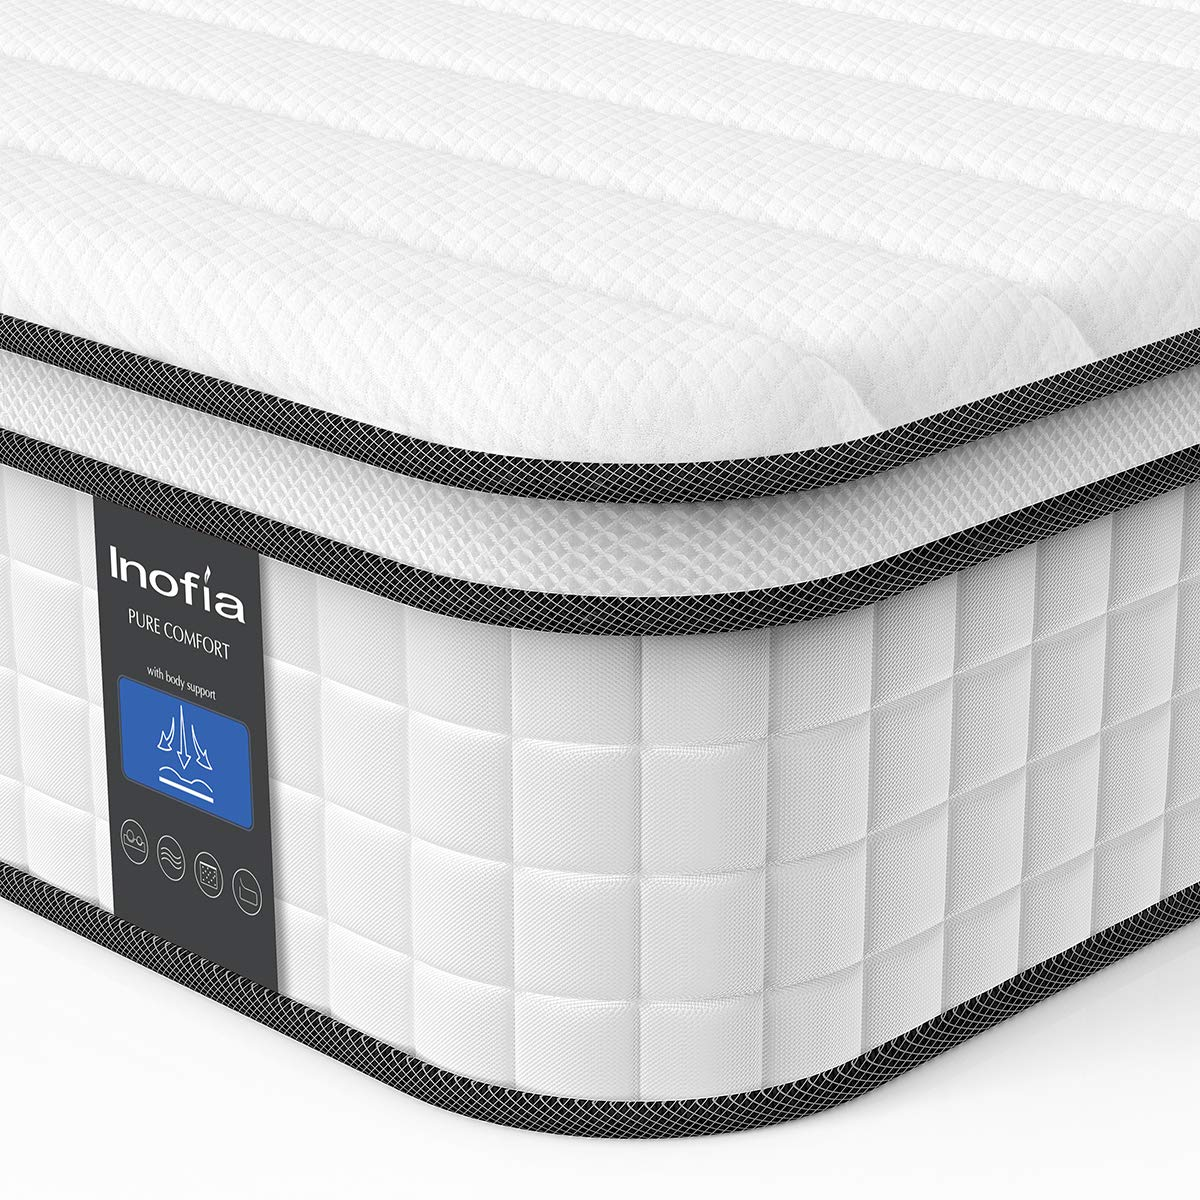 Inofia Responsive Memory Foam Mattress Review